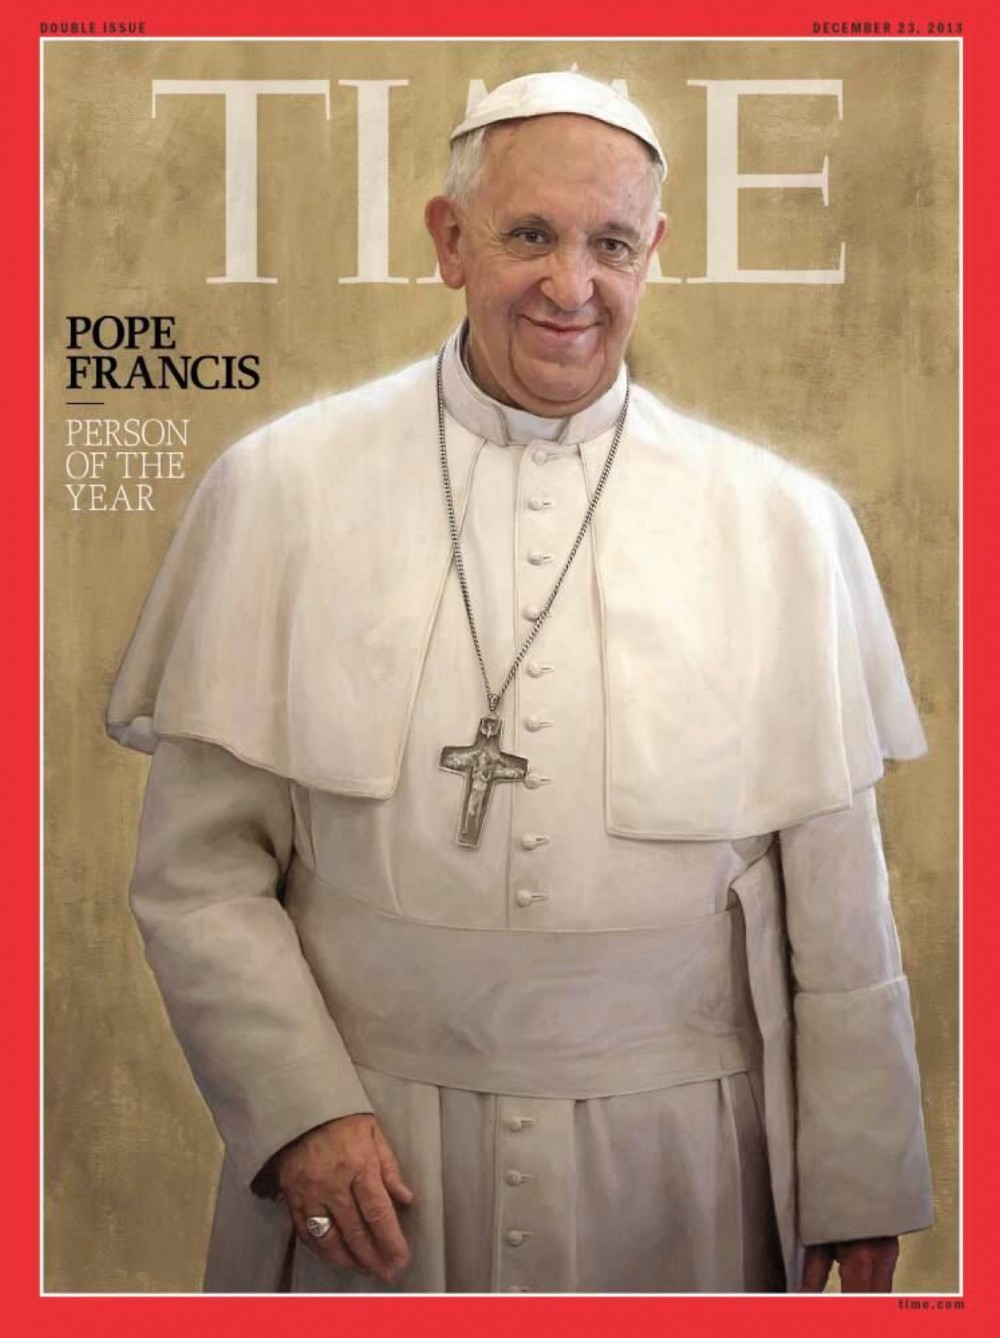 reasons_why_pope_francis_is_one_of_the_best_people_in_the_world_12